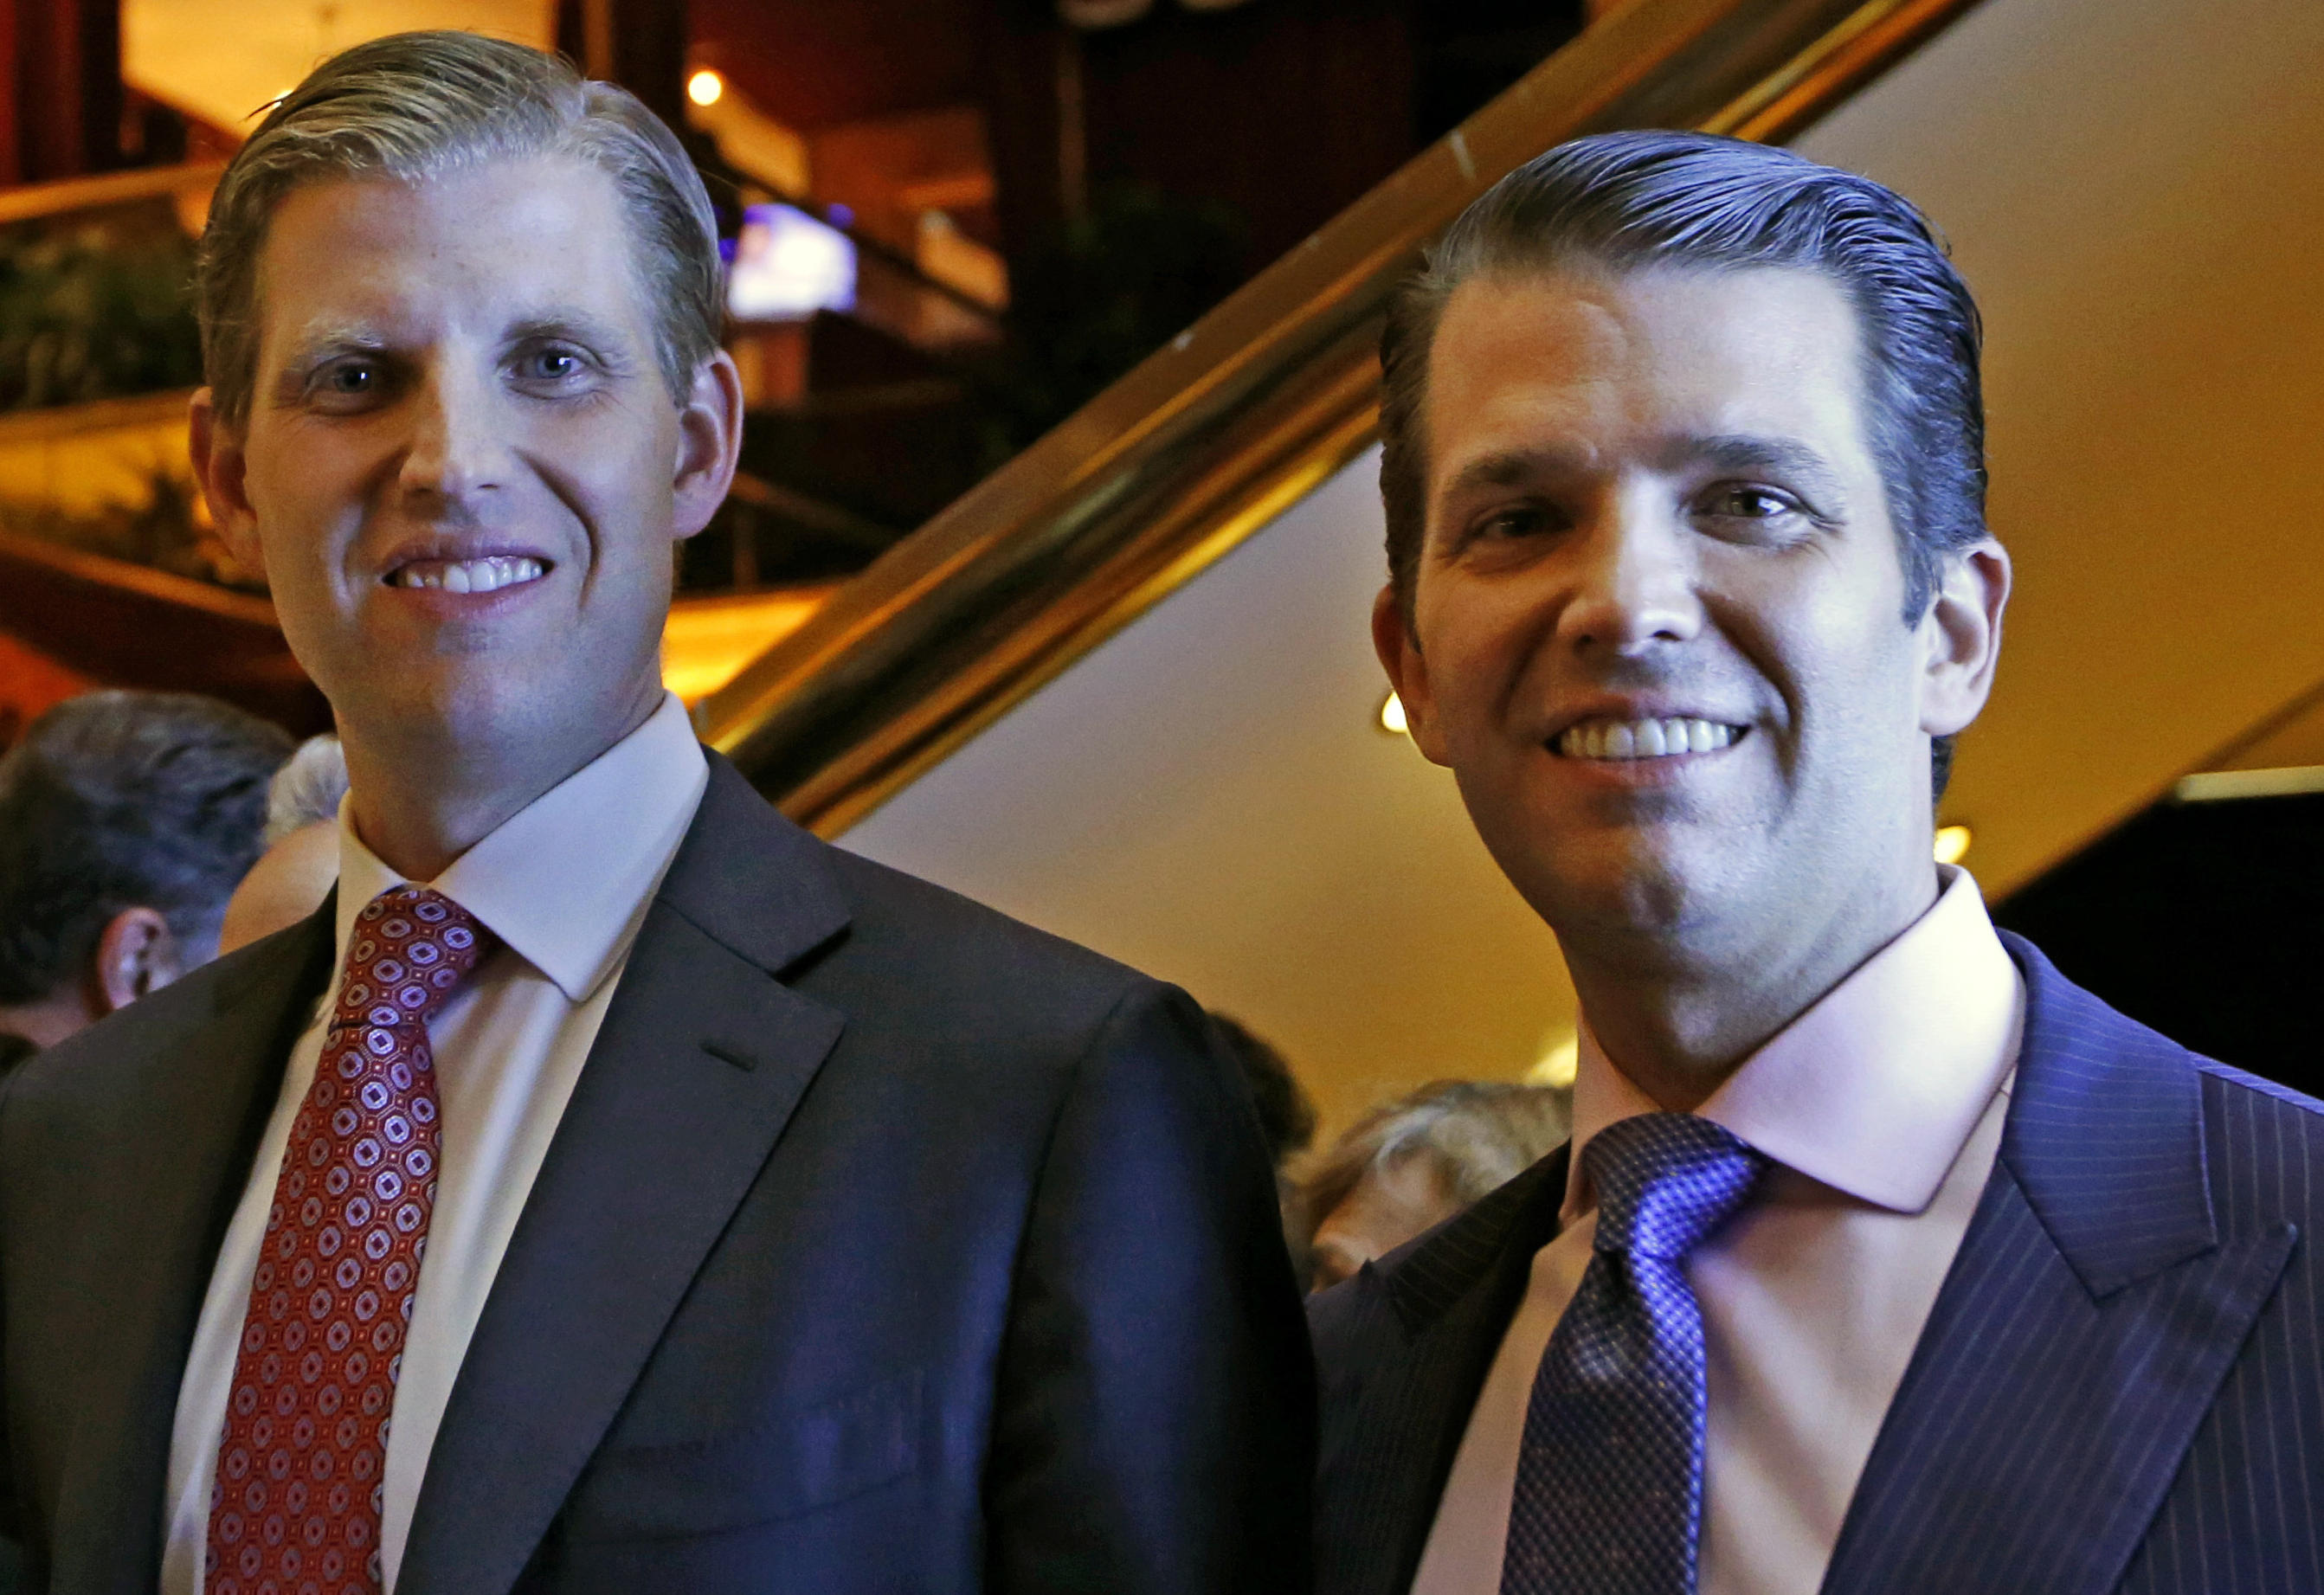 Trump sons' trip to Dubai costs taxpayers at least $73,000